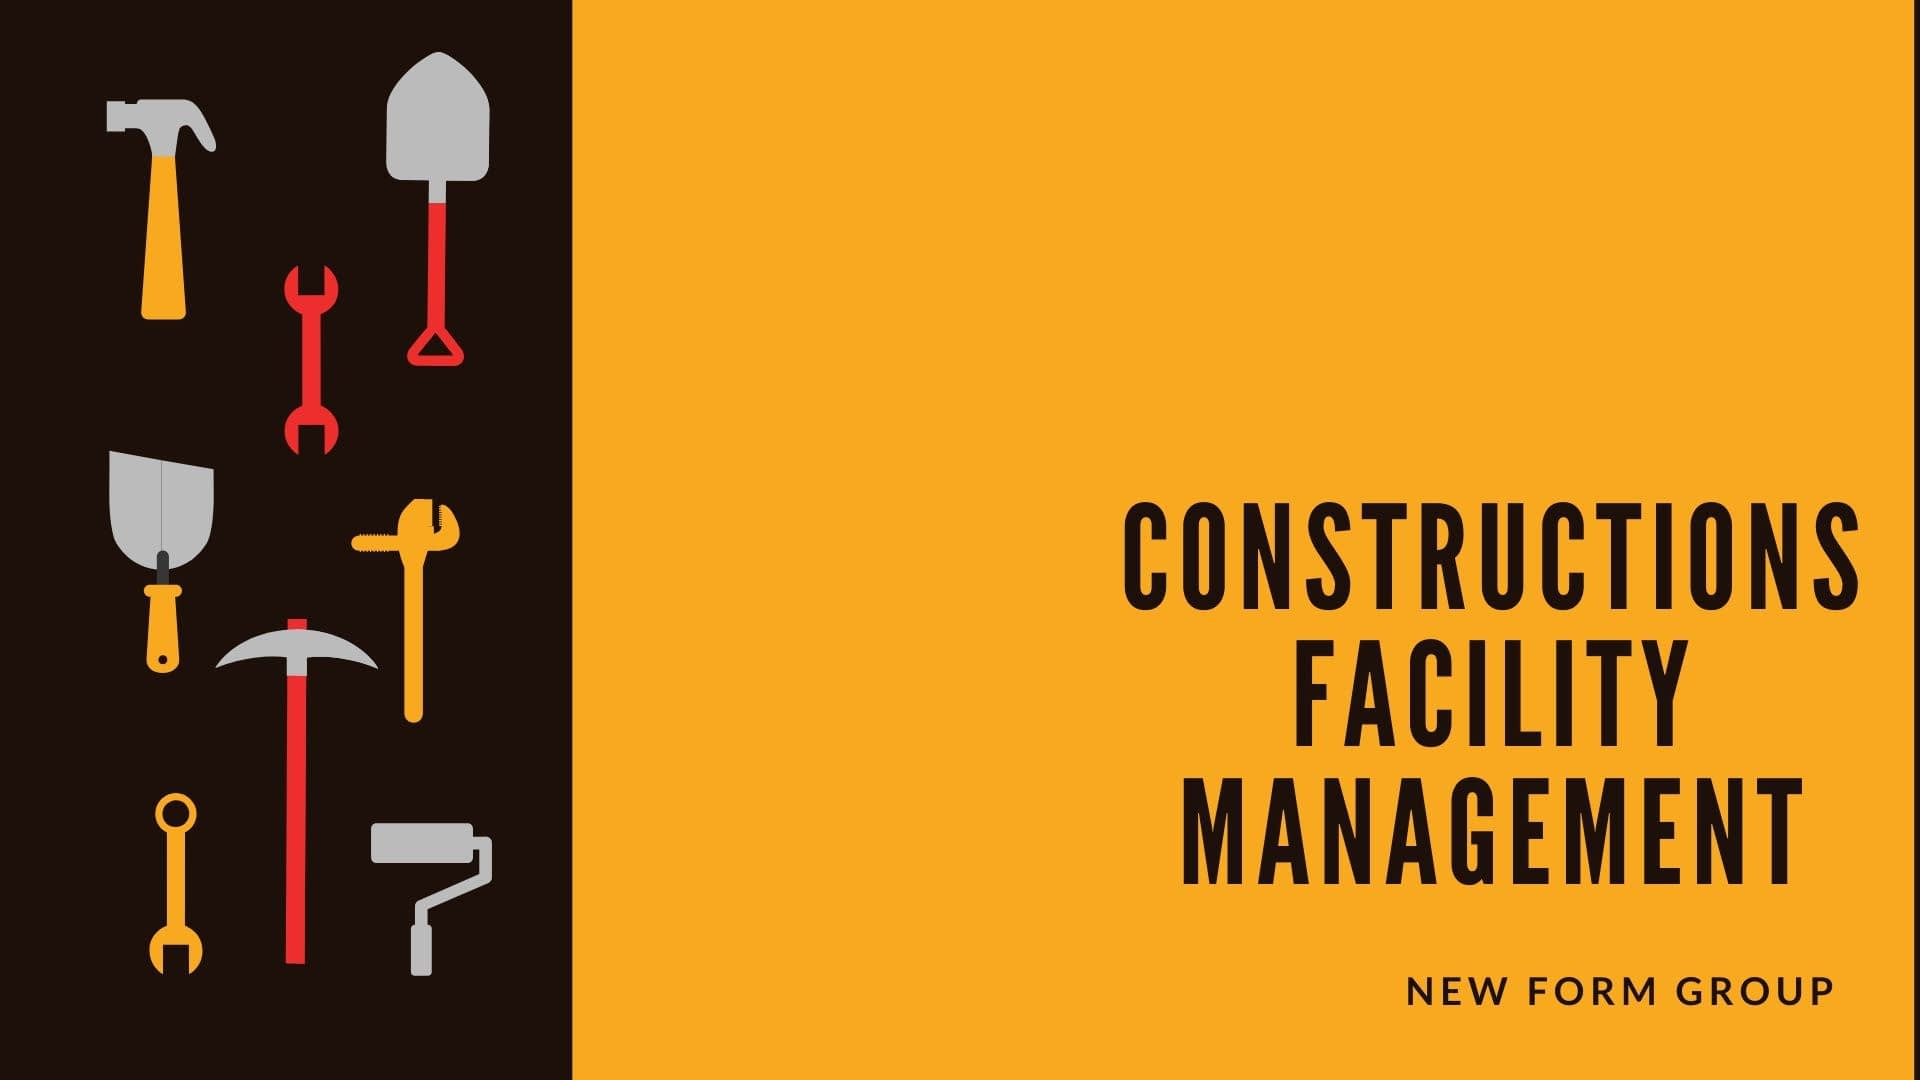 constructions facility management featured image